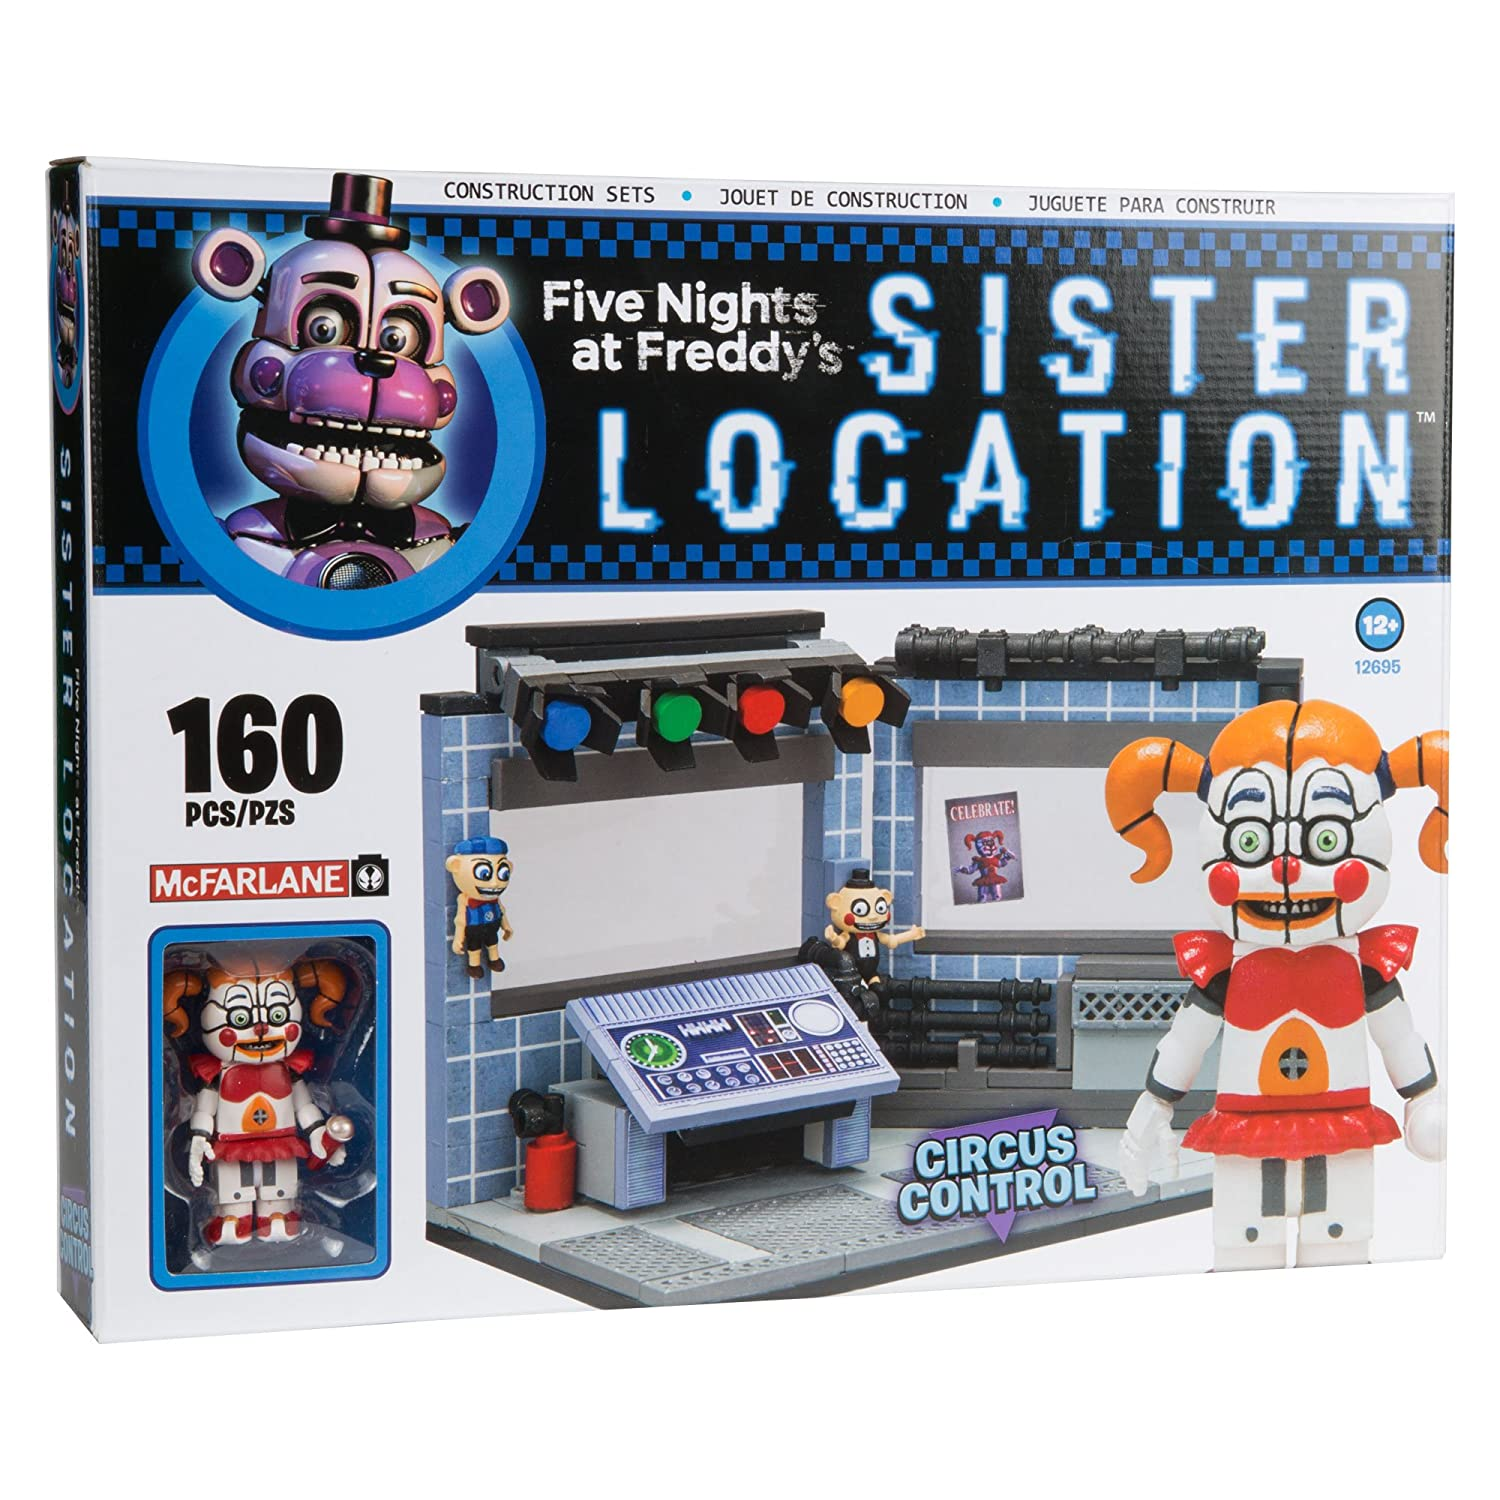 More five nights at freddy s construction sets coming soon - Amazon Com Mcfarlane Toys Five Nights At Freddy S Circus Control Construction Building Kit Toys Games